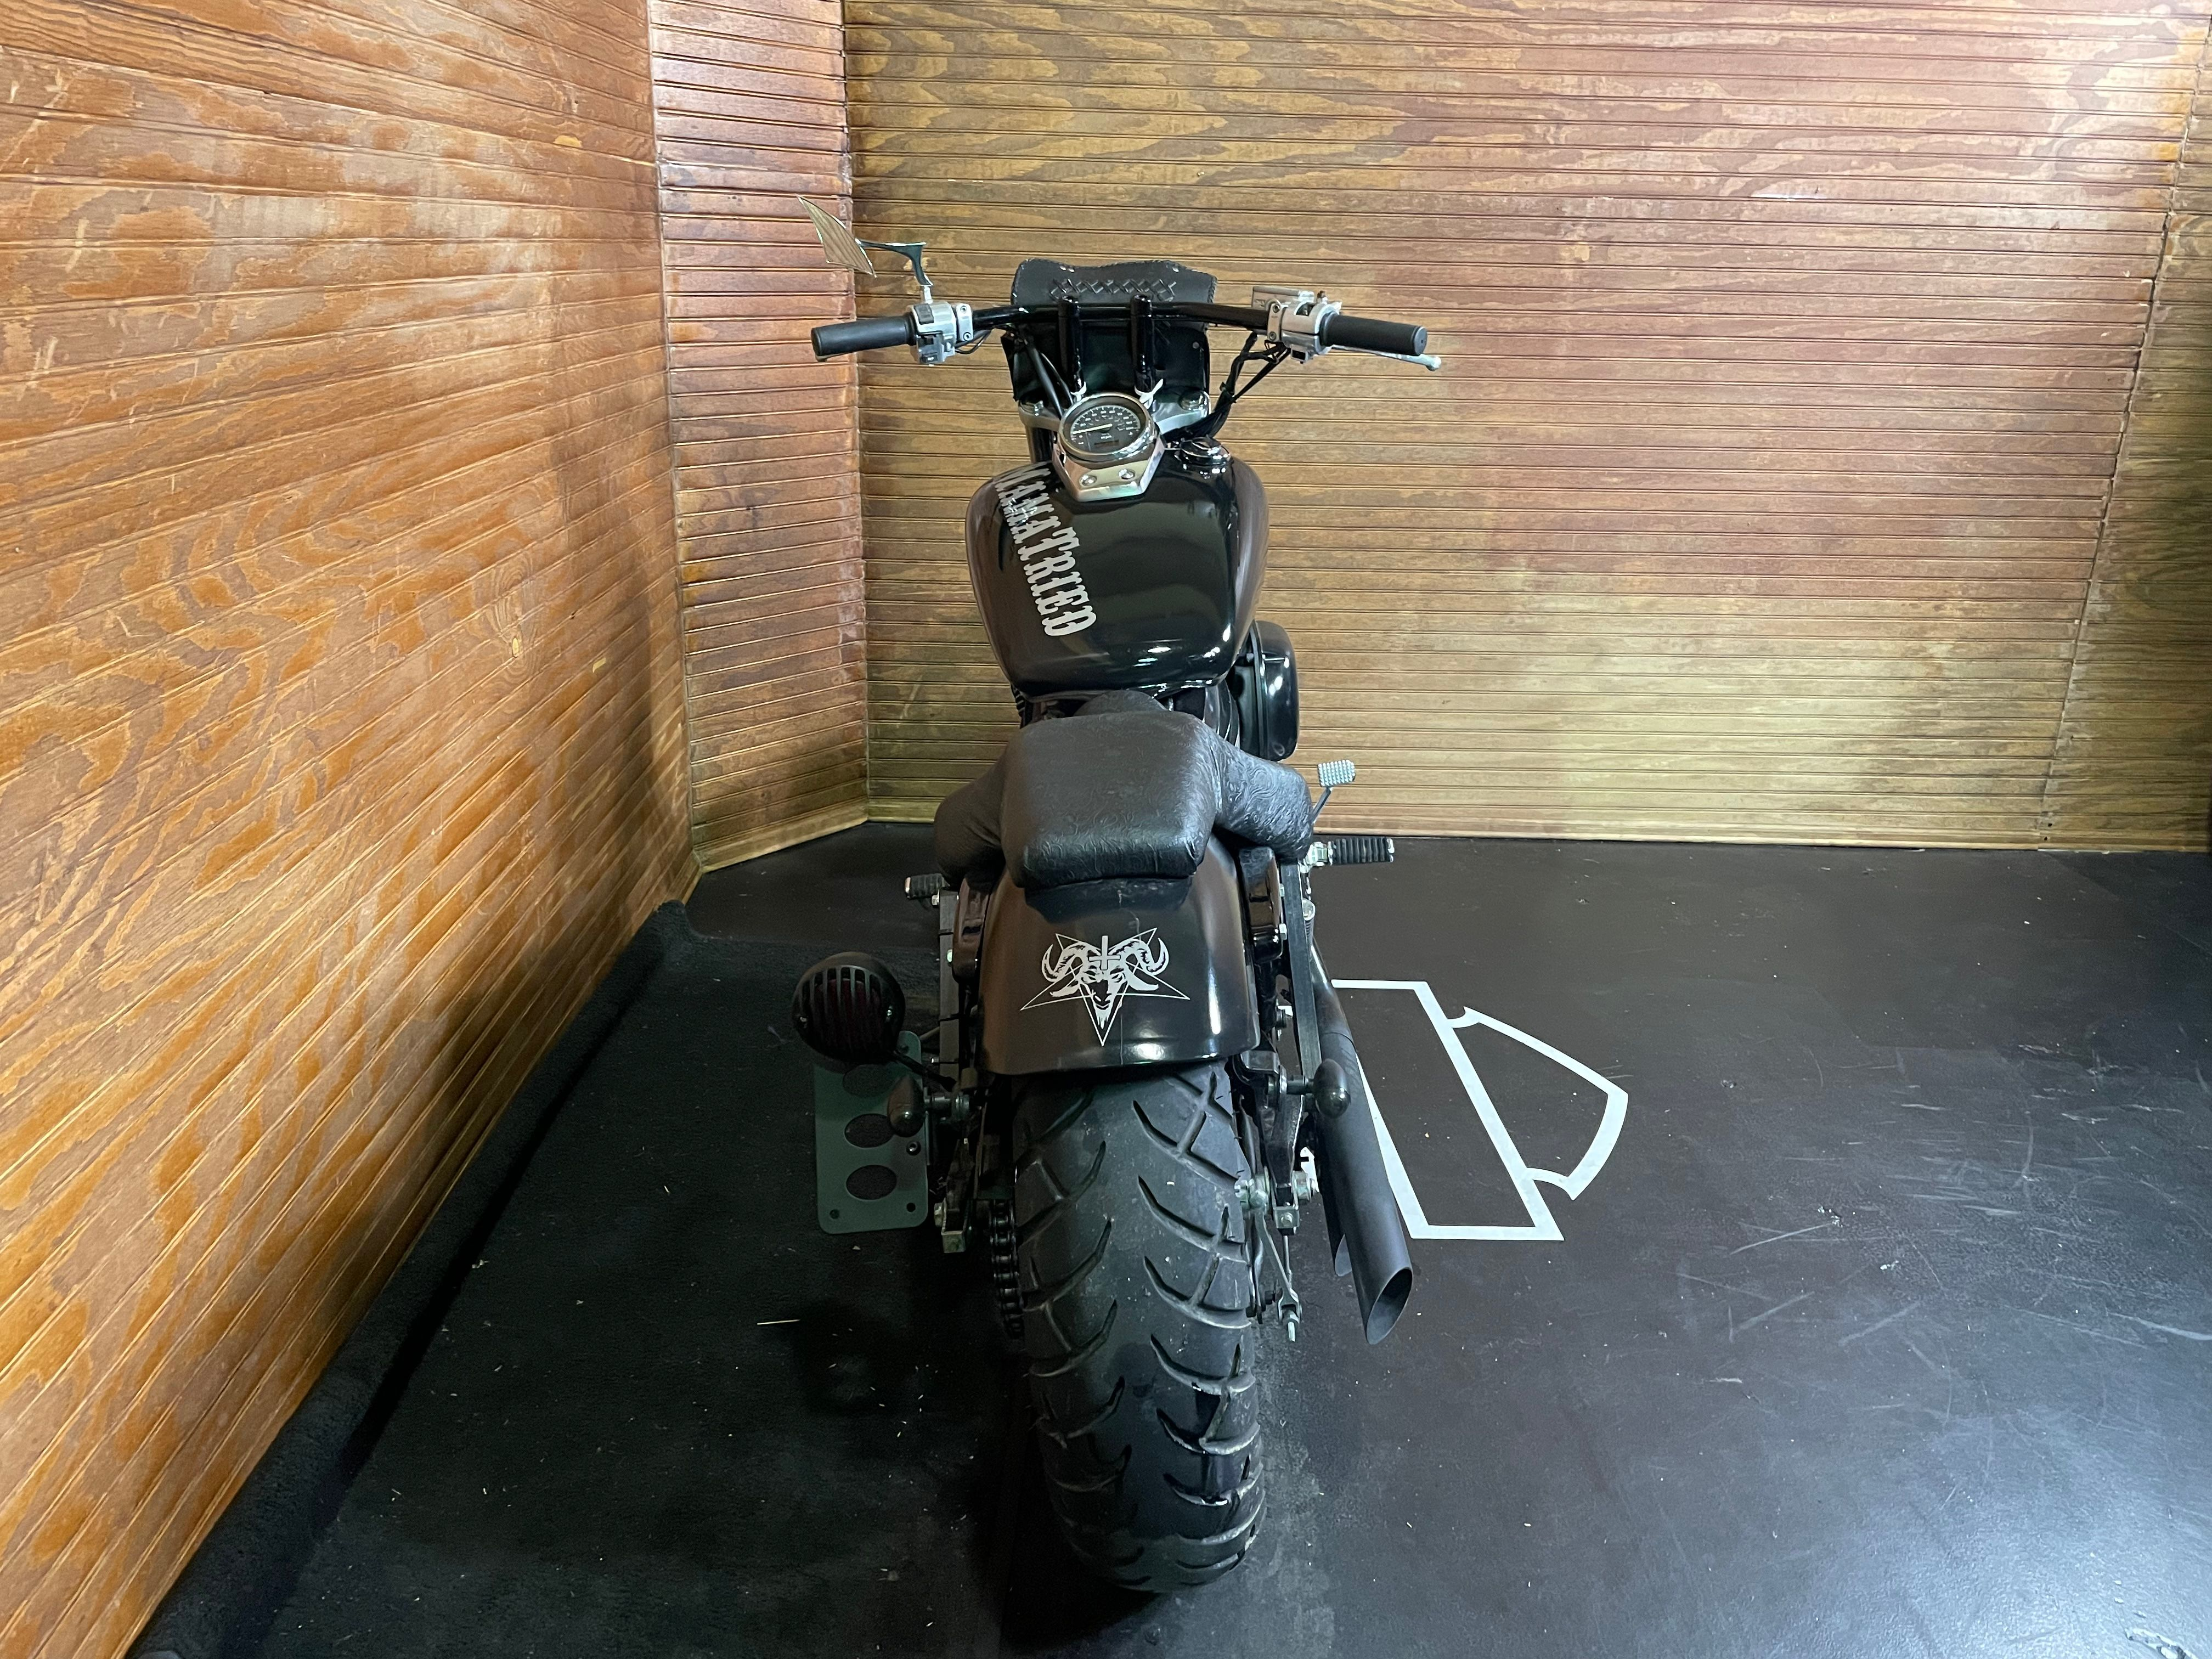 Pre-Owned 2002 HOND Shadow